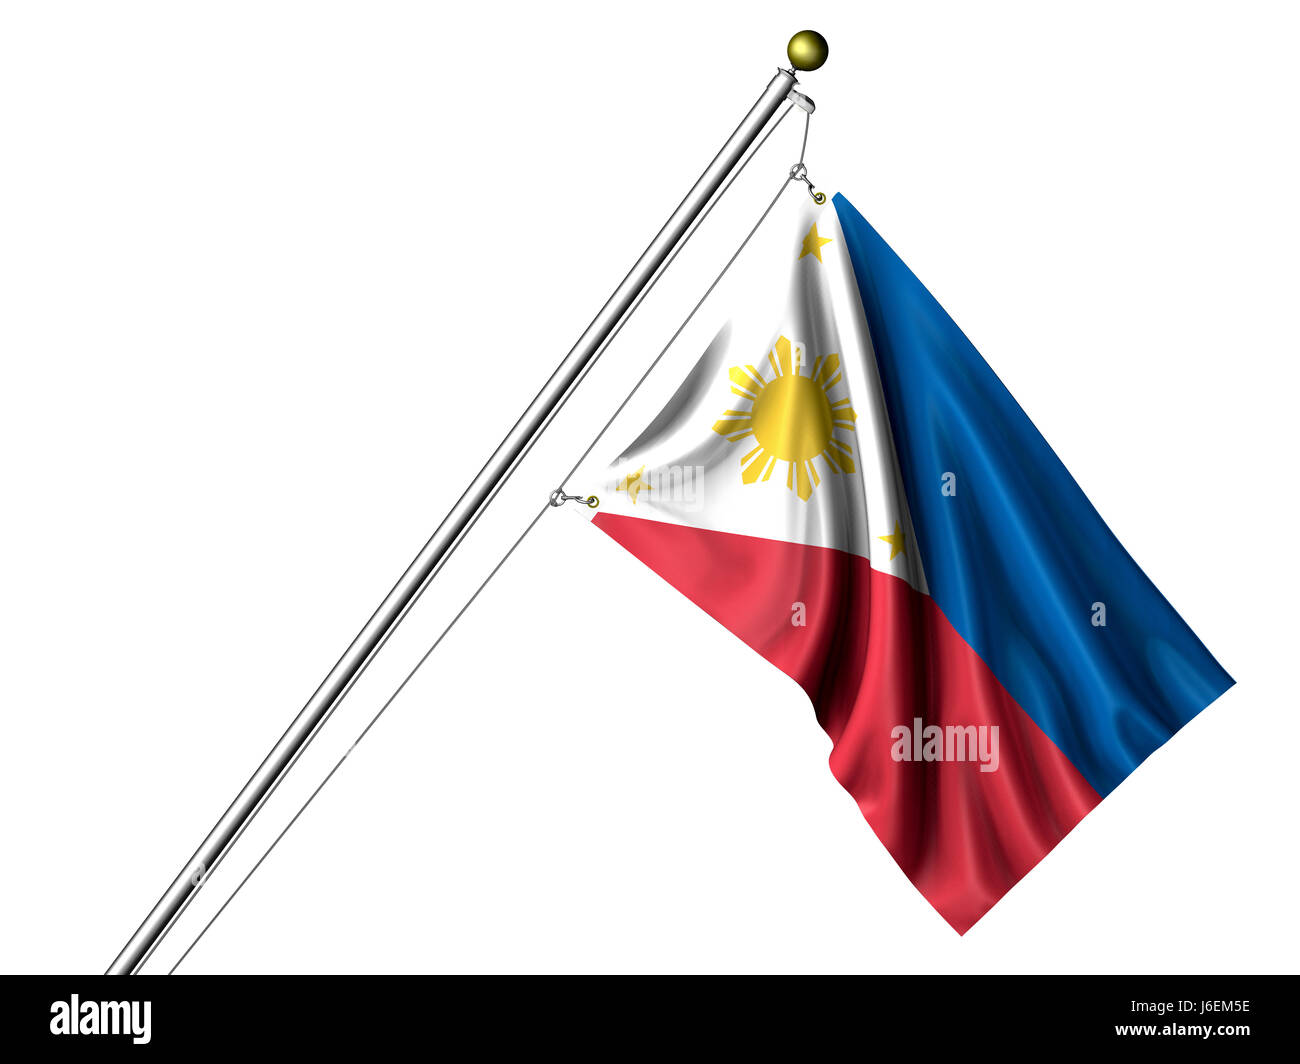 Philippine flag cut out stock images pictures alamy isolated asia flag pole asian philippines philippine isolated colour asia flag stock image biocorpaavc Choice Image